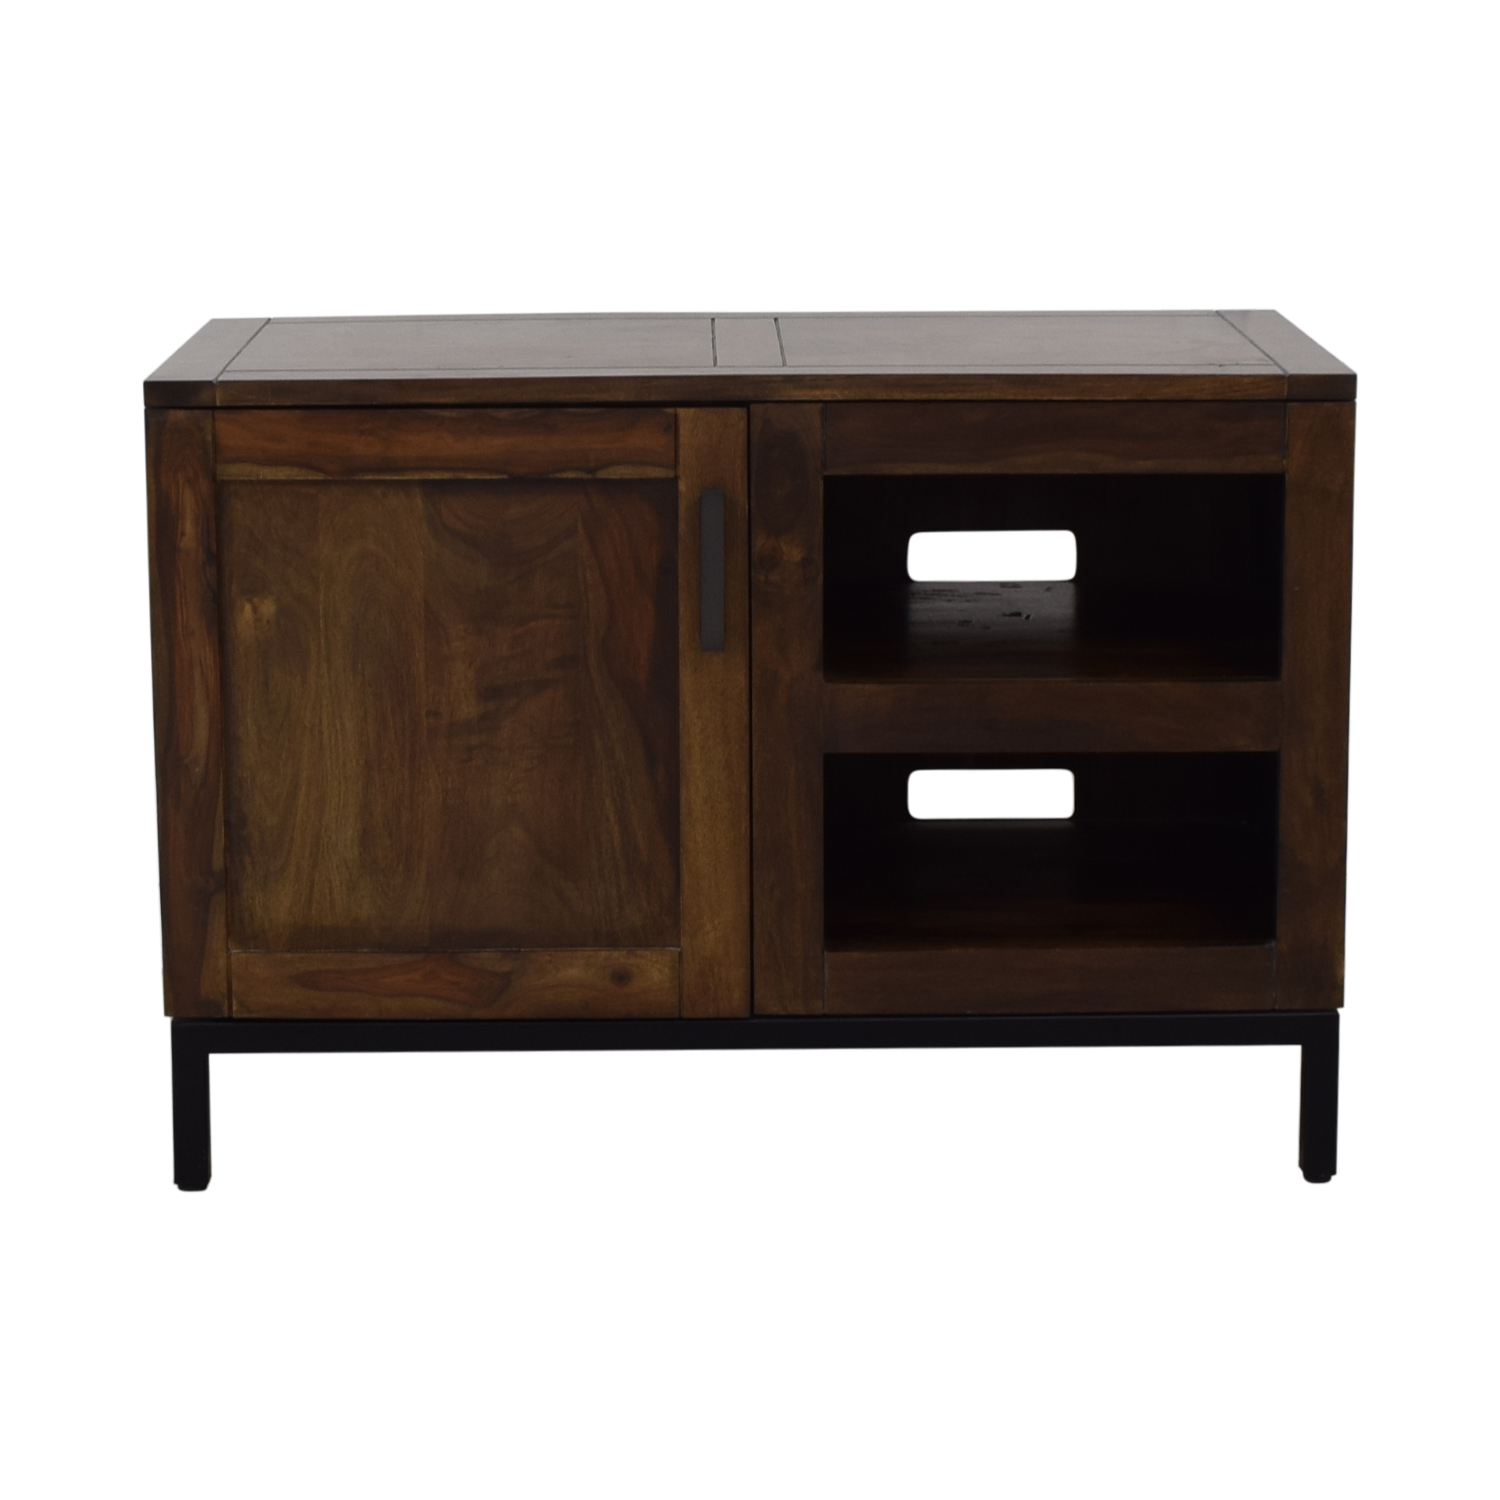 Crate & Barrel Crate & Barrel Wyatt Media Console dimensions